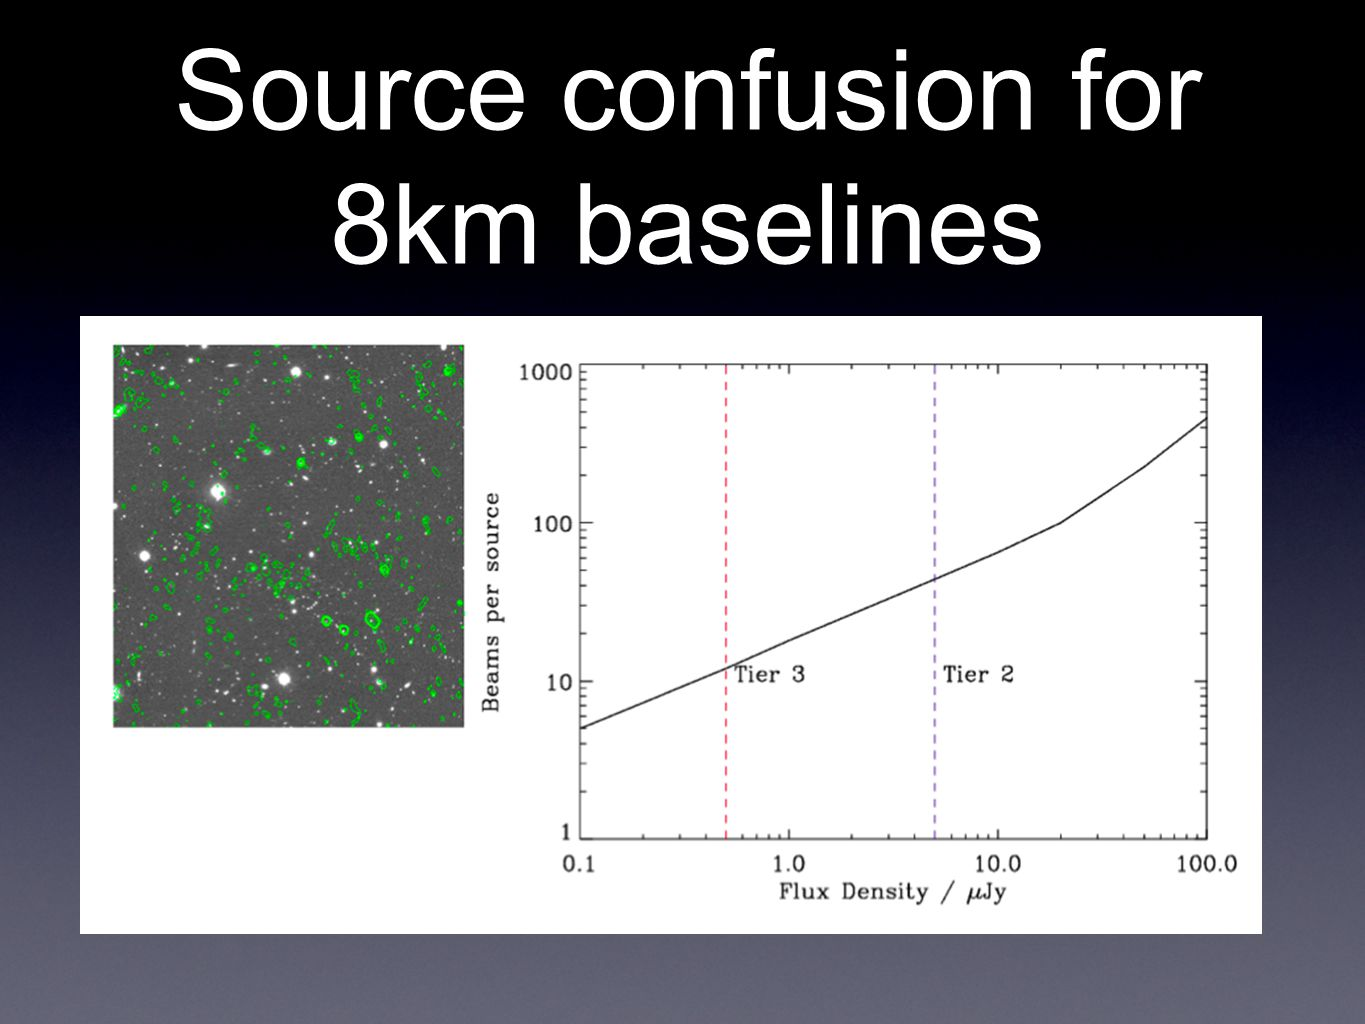 Source confusion for 8km baselines